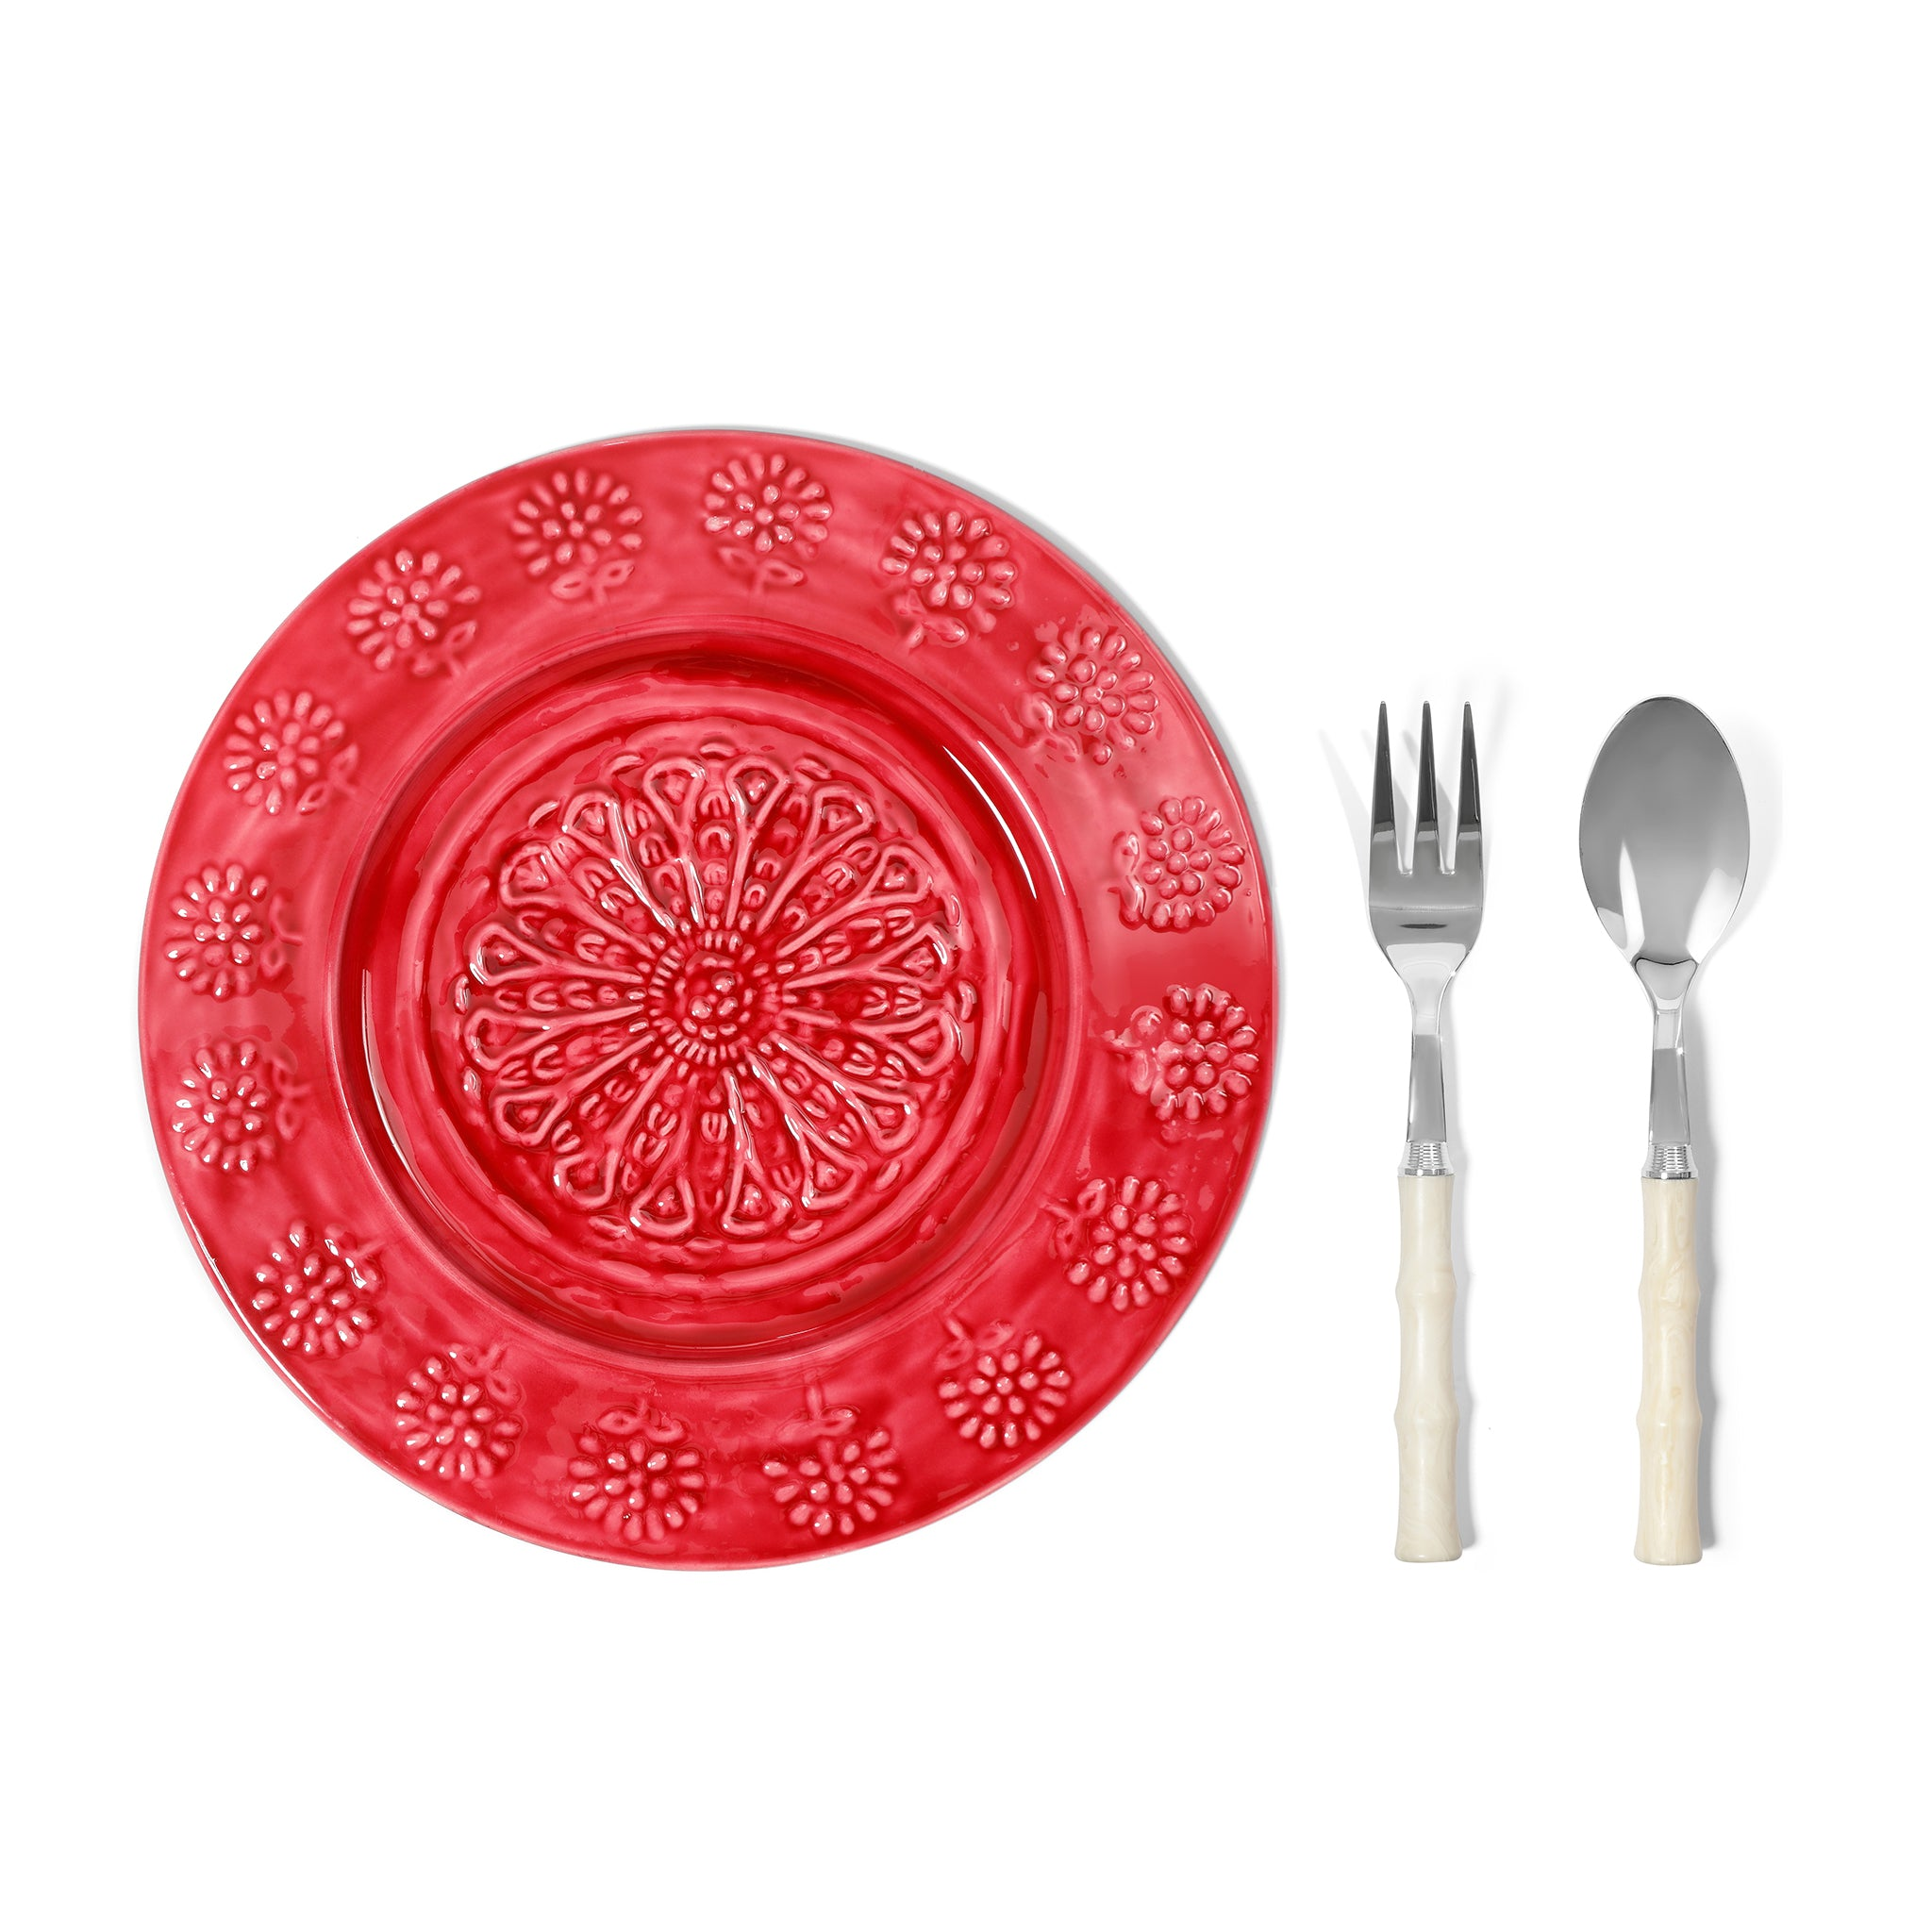 Serving platter, serving spoon & fork